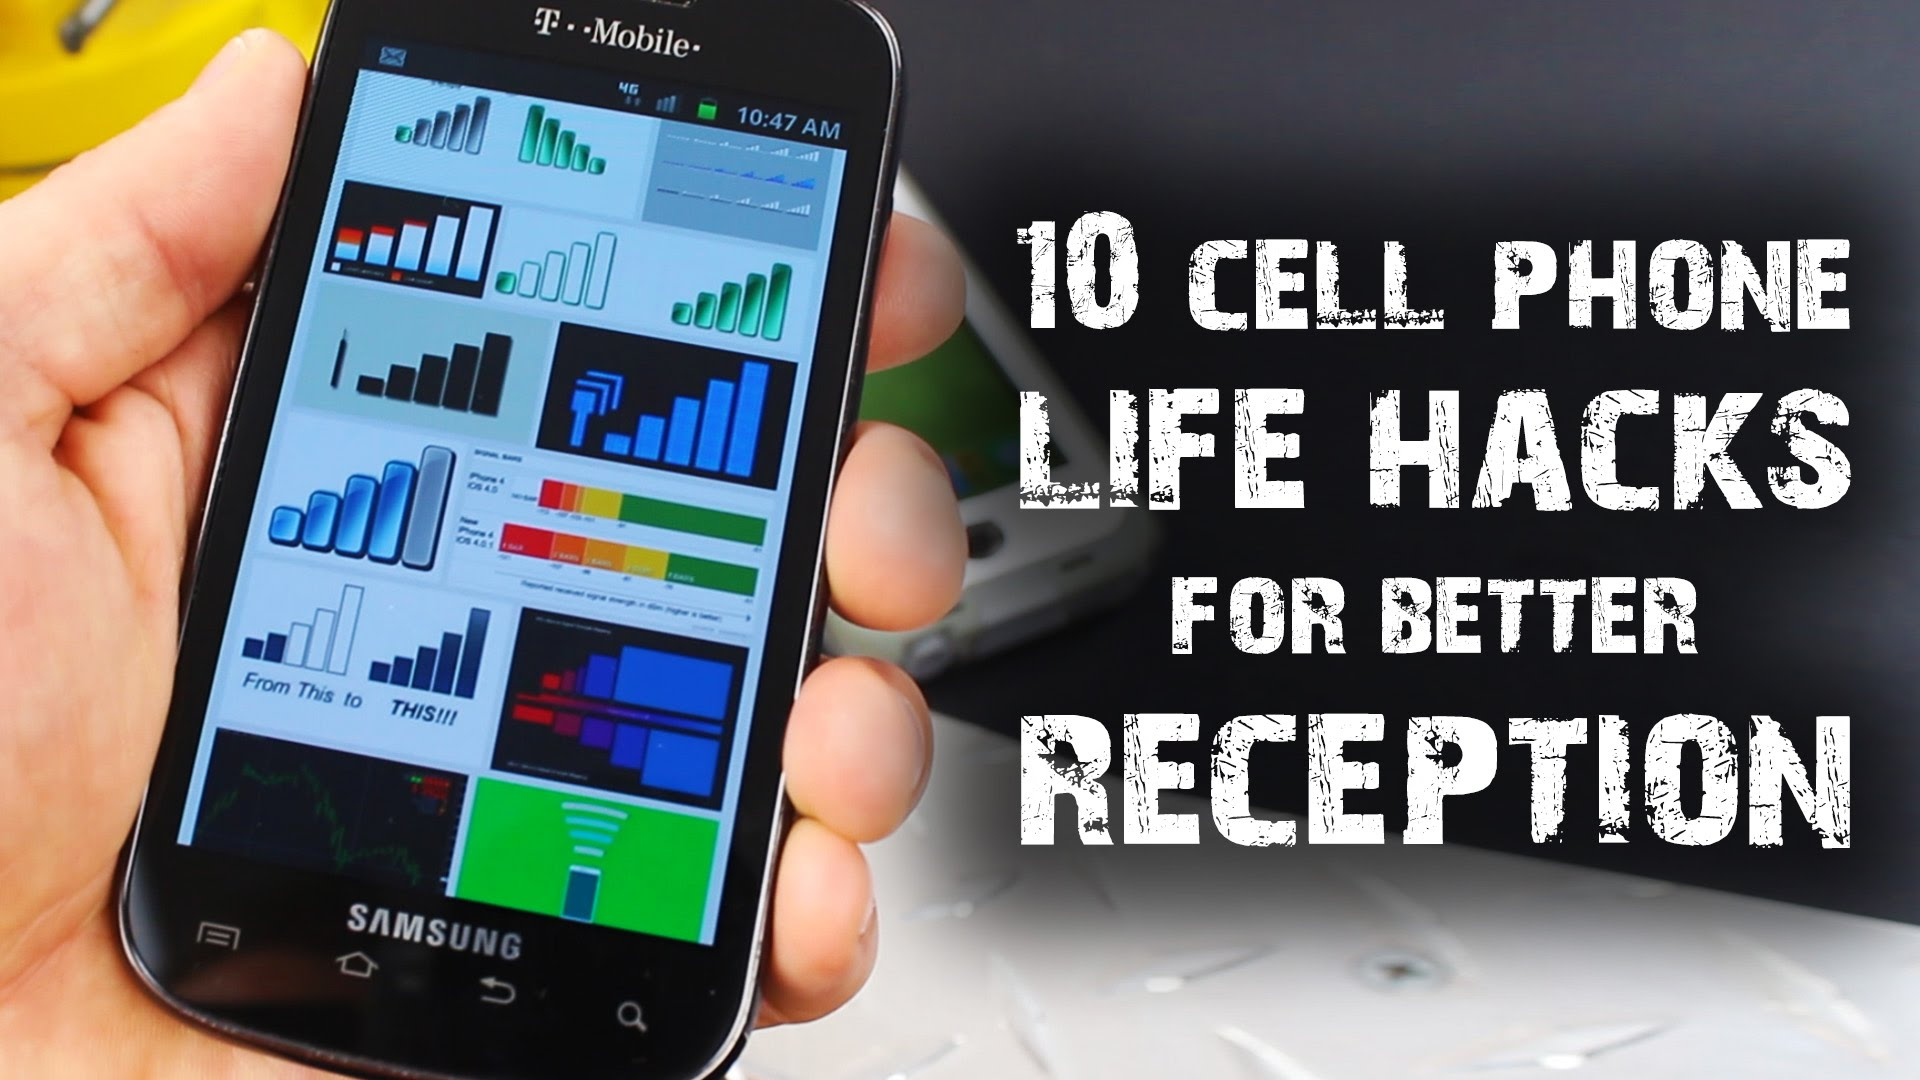 Cell Phone Life Hacks That Help Get Better Reception